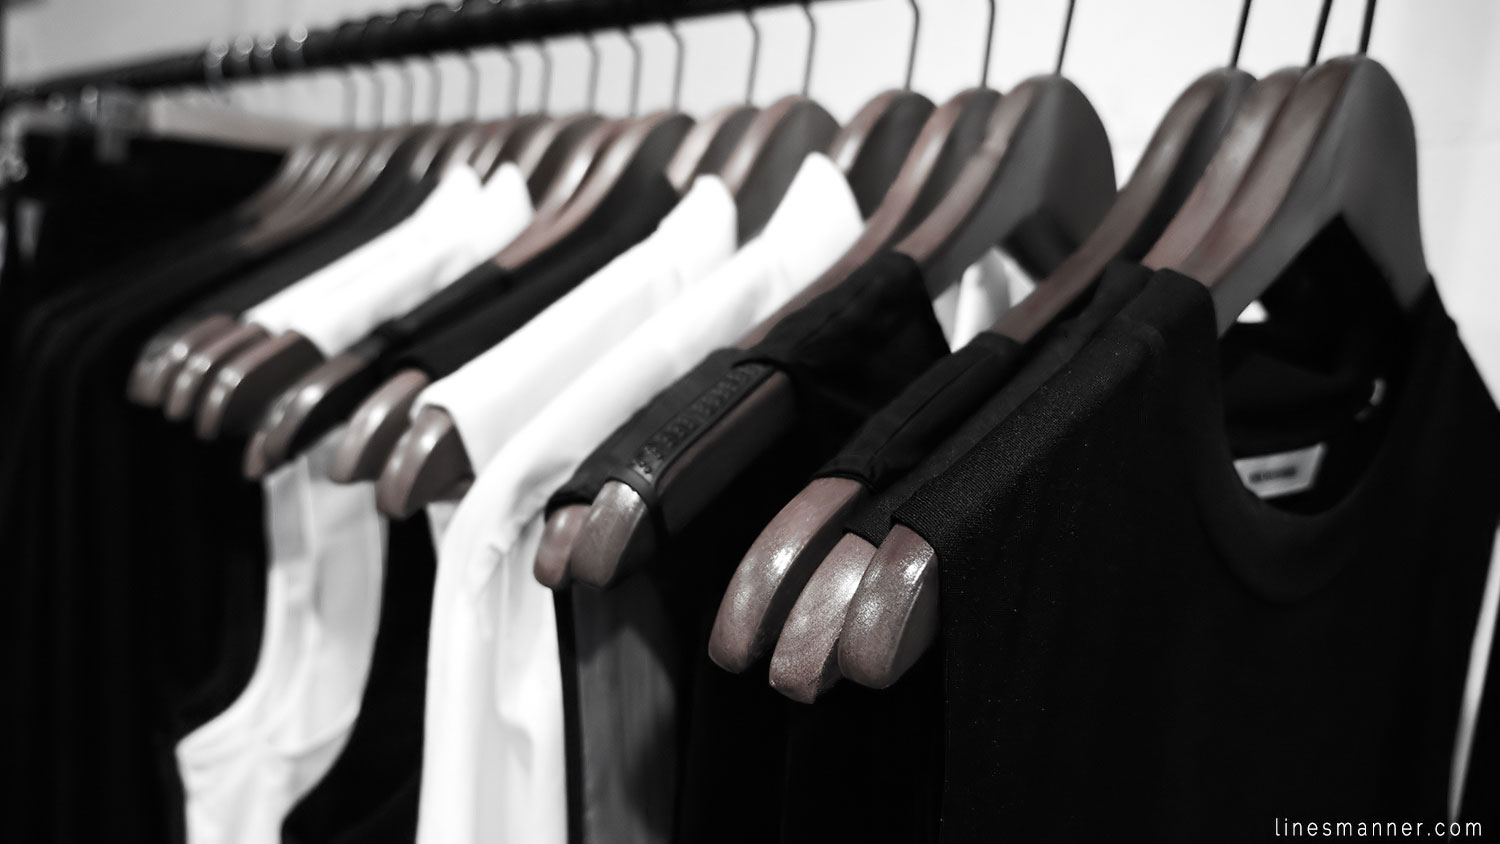 Lines-Manner-Concept-Boutique-Store-Minimal-Trend-Essentials-Basics-Staples-Ibiki-Montreal-Canada-Art-Contemporary-Artistic-Details-Monochrome-Black_and_White-3